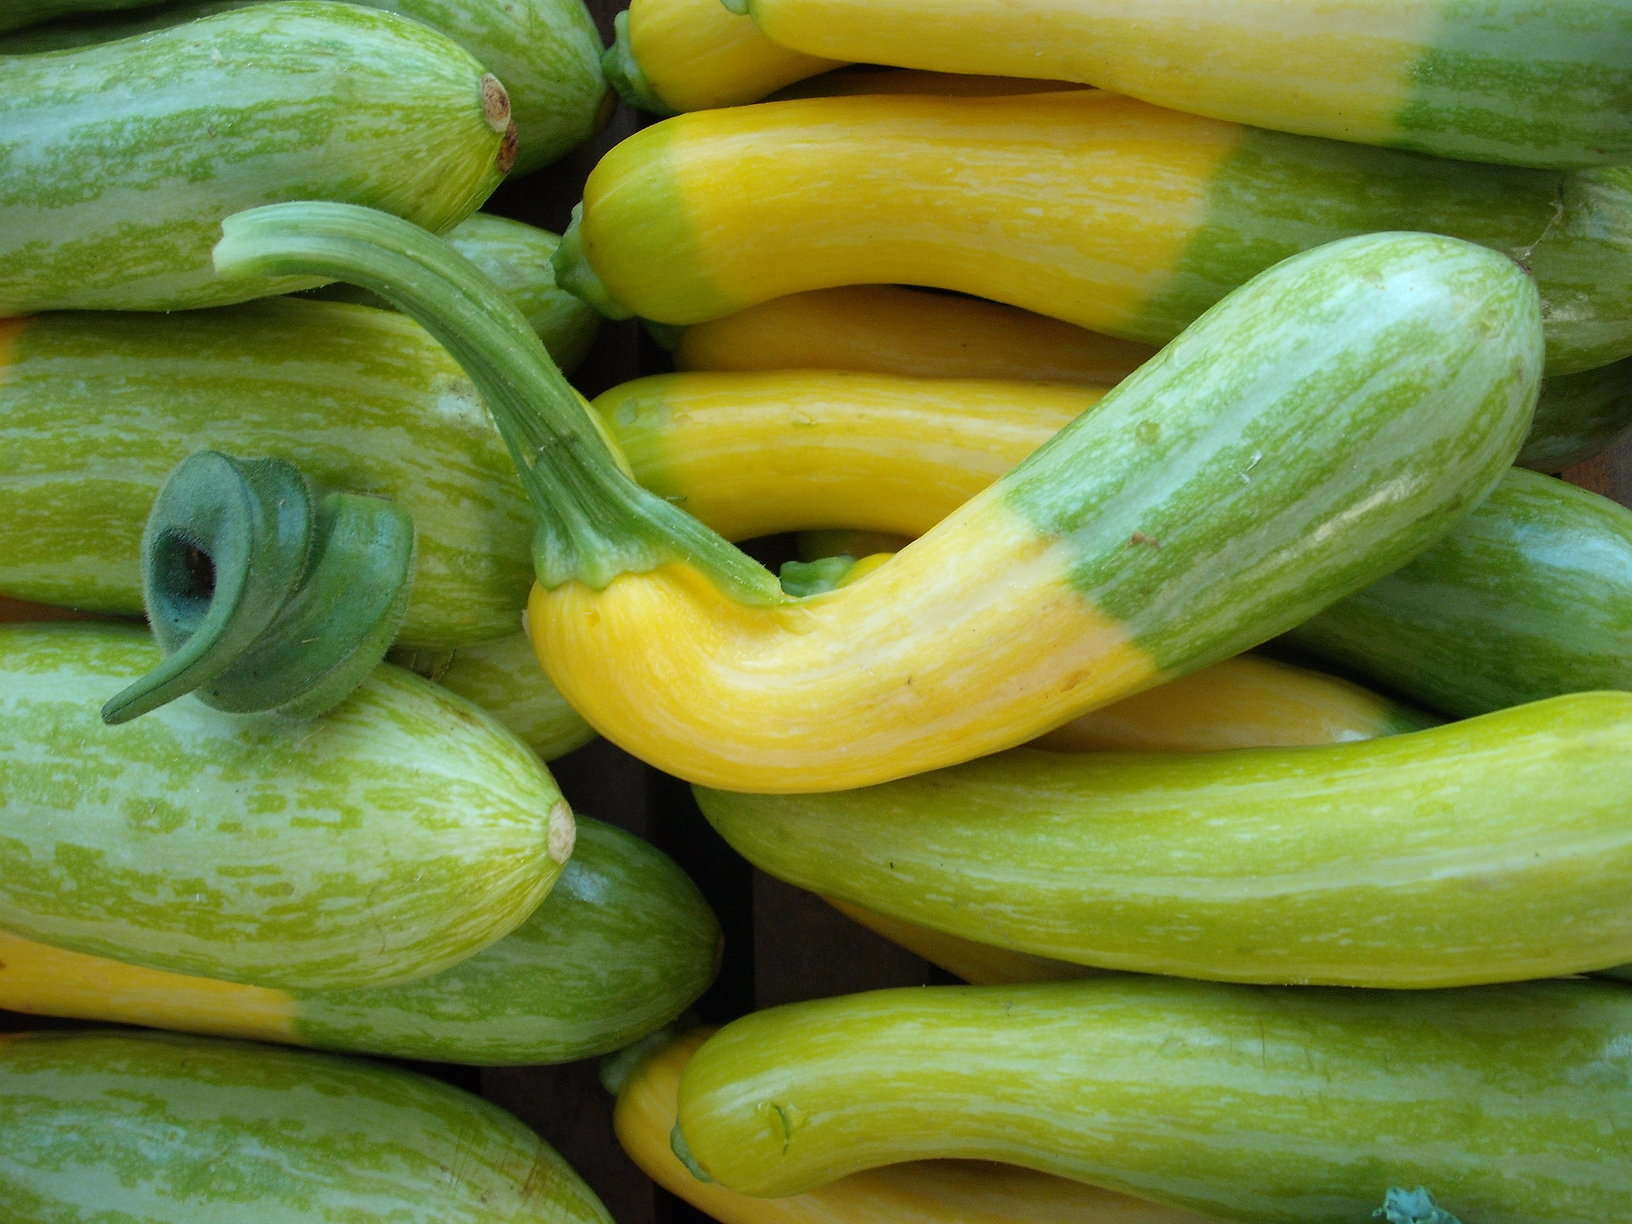 Ugly Vegetables and Fruits: Could they be the new chic?